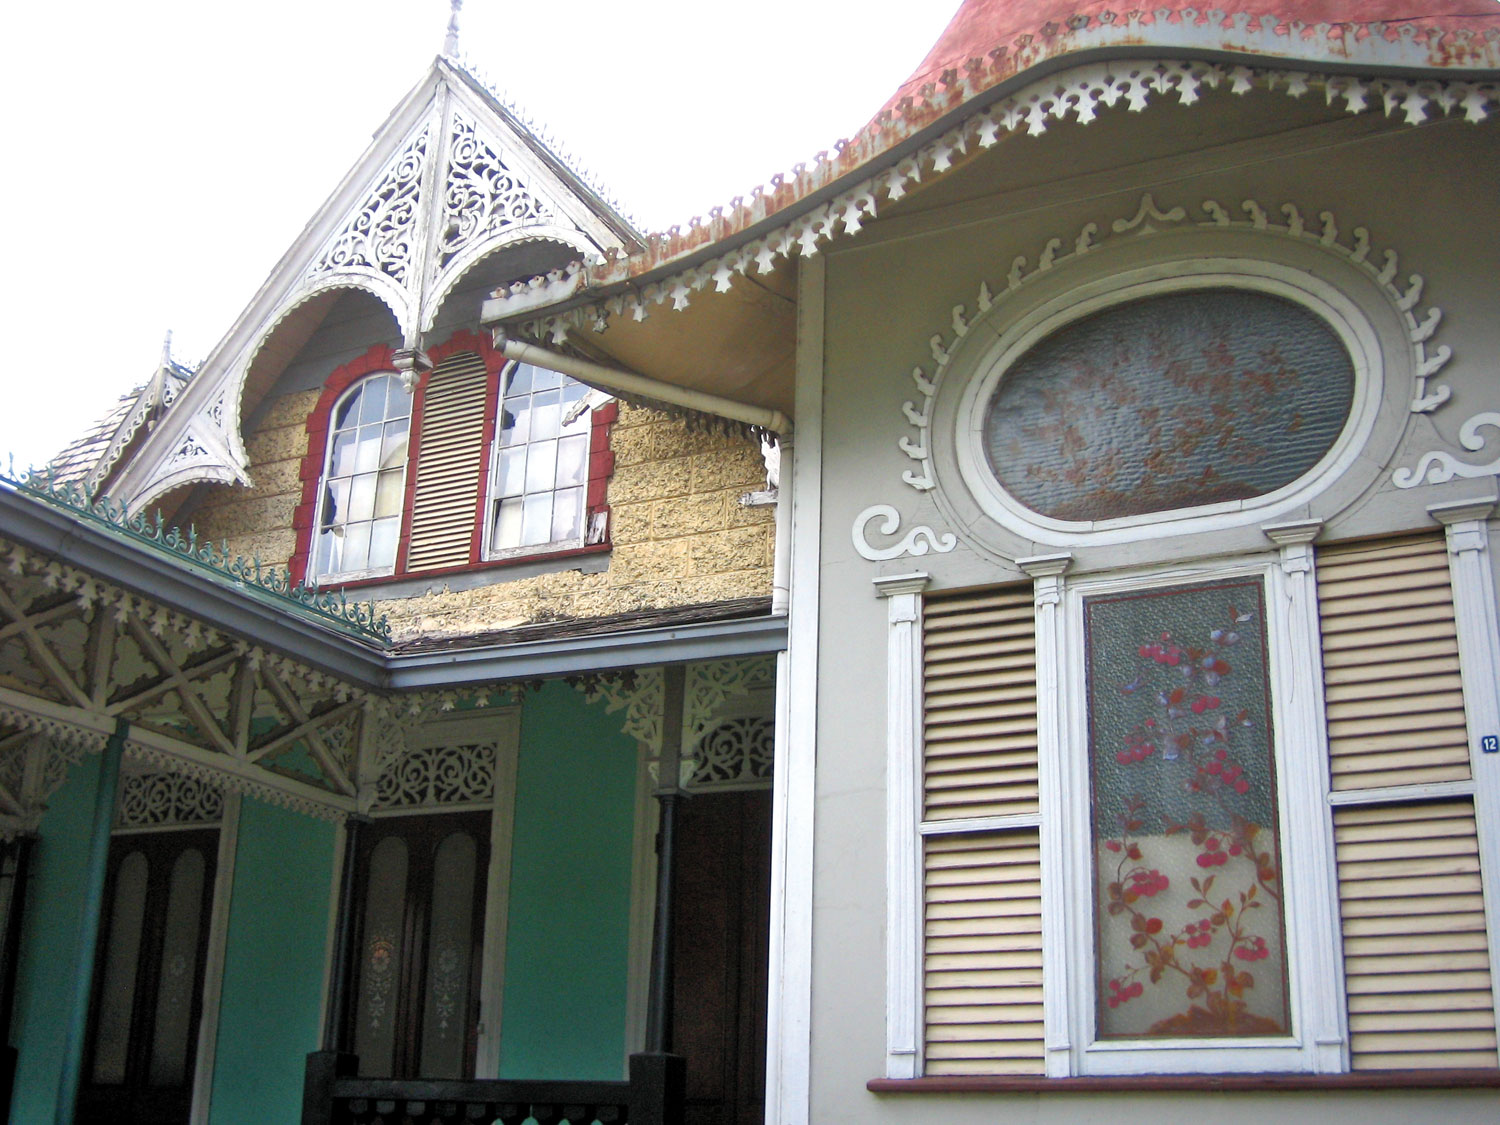 The front facade of the Boissiere House, 12 Queen's Park West, Port of Spain, Trinidad. Designed by architect Edward Bowen. Photograph by Nicholas Laughlin